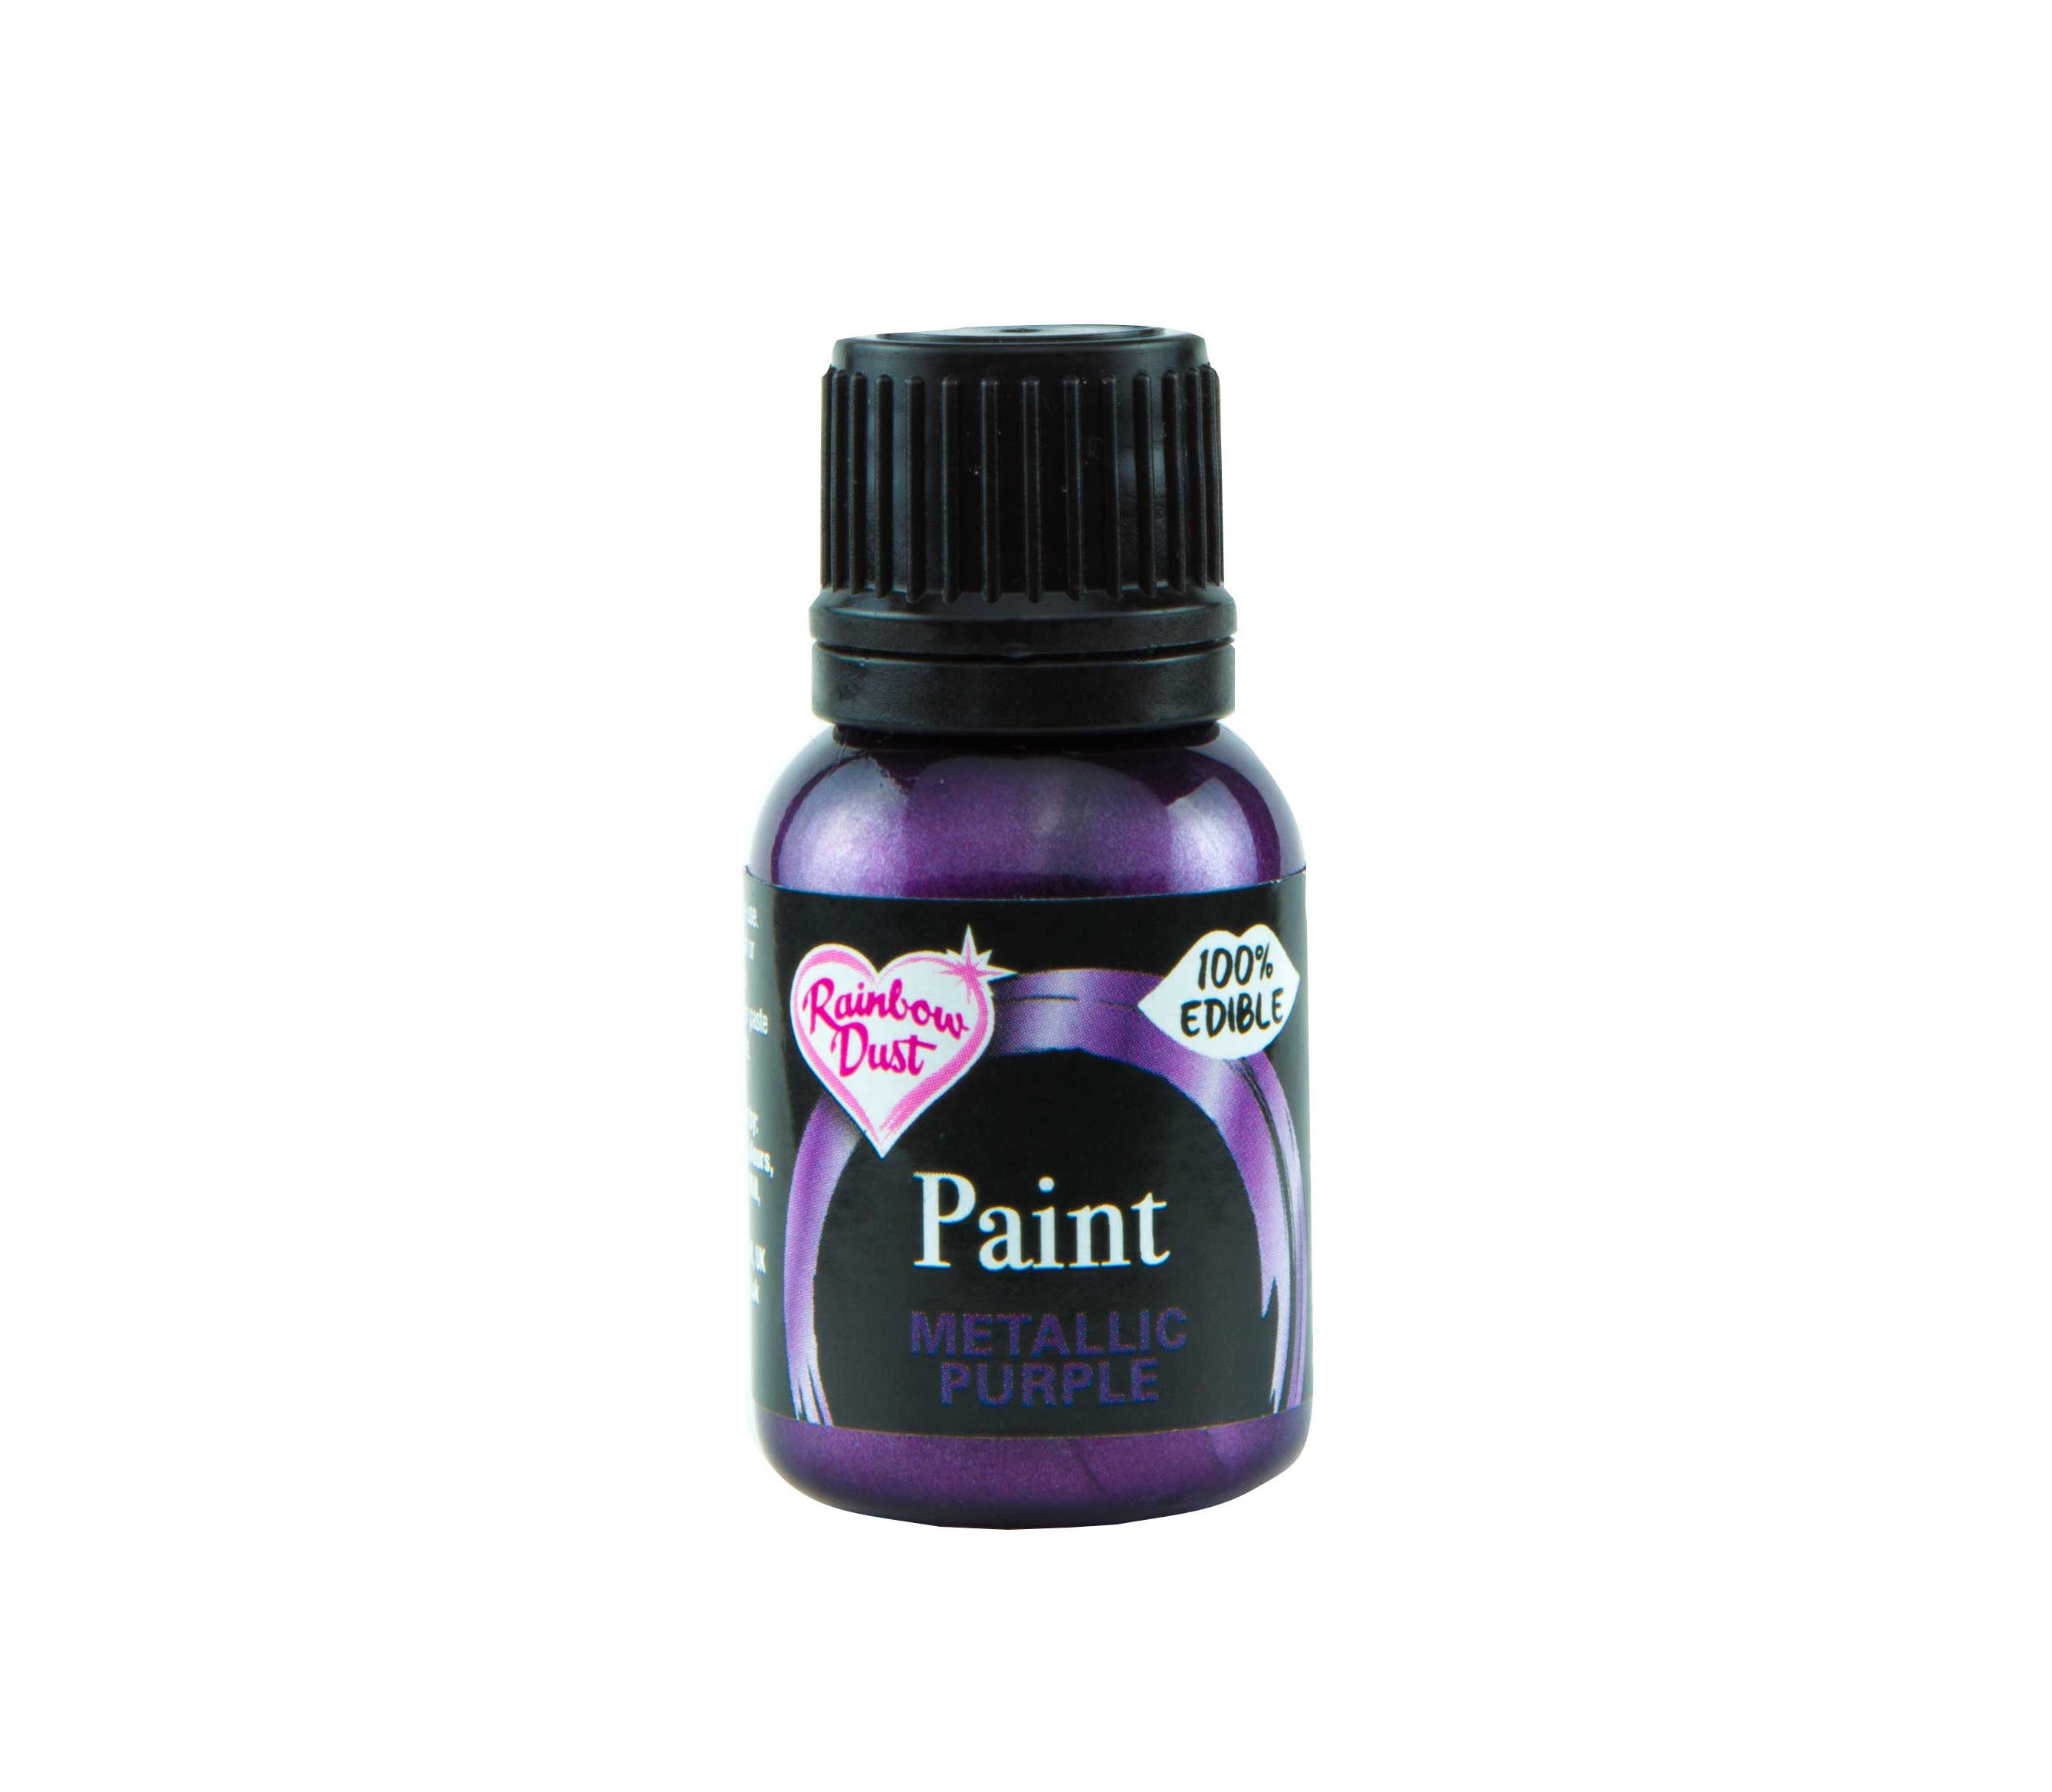 Edible Paints Metallic Purple 25g